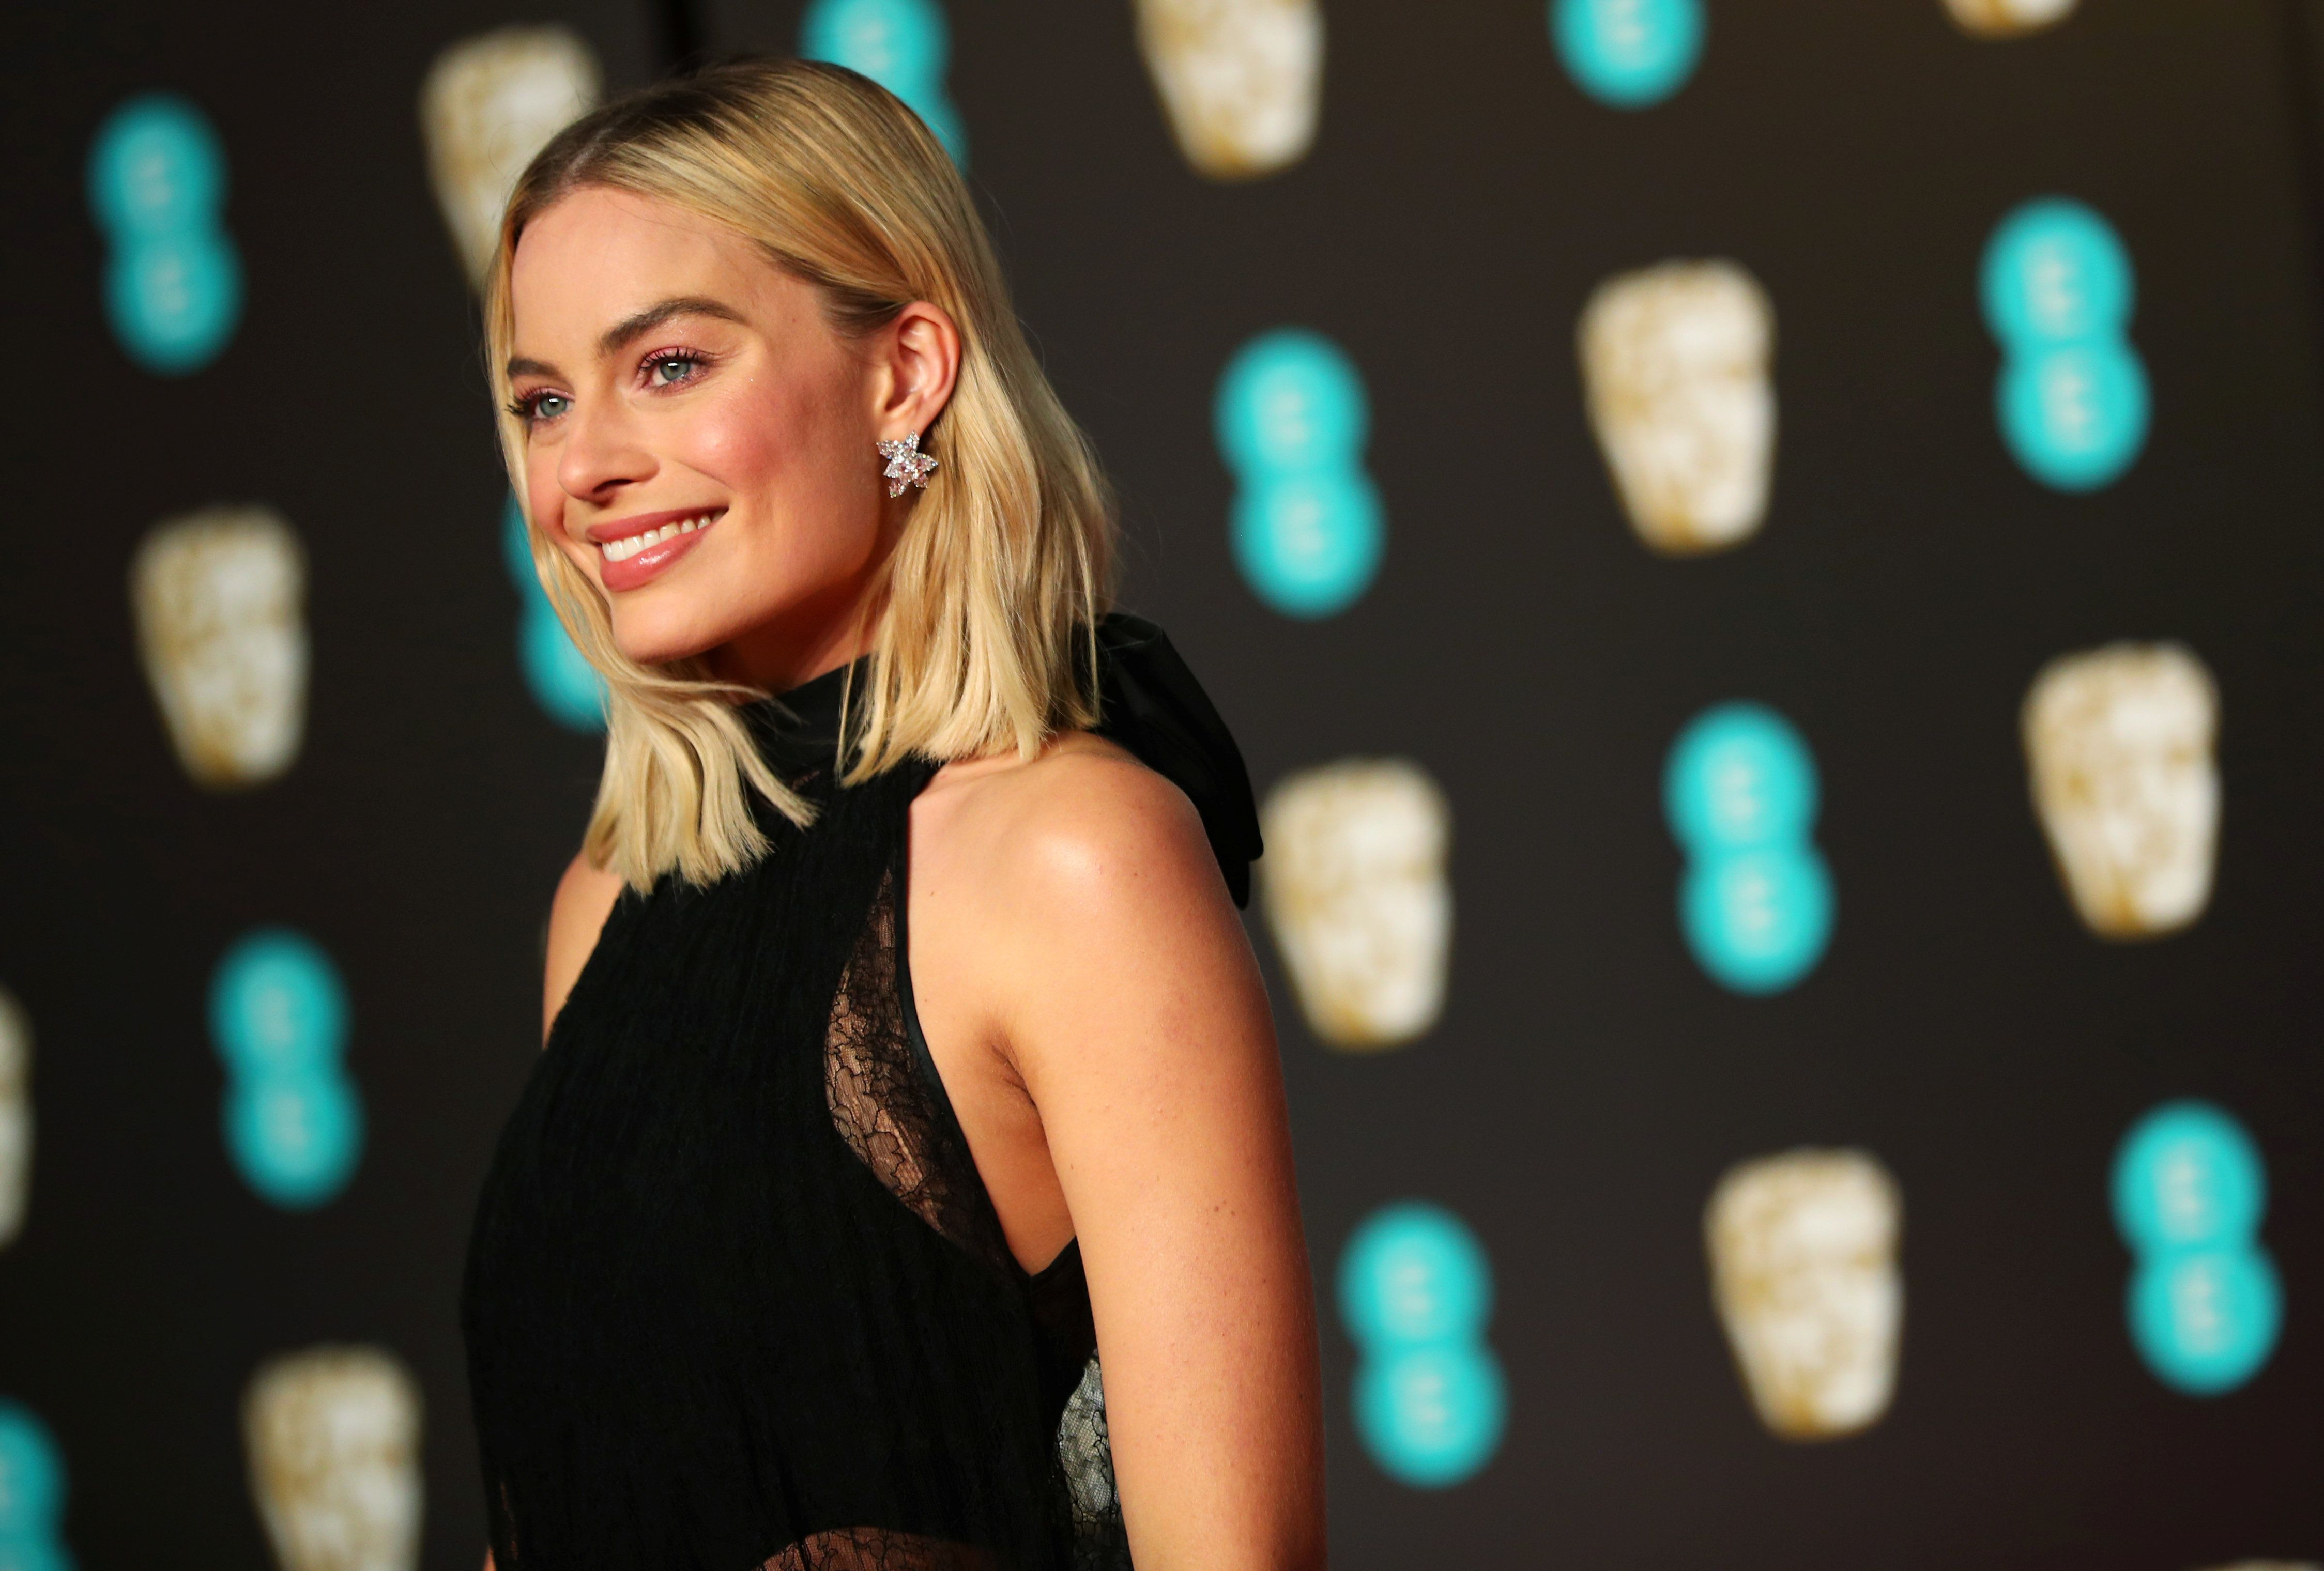 See All The Photos From The Baftas 2018 Red